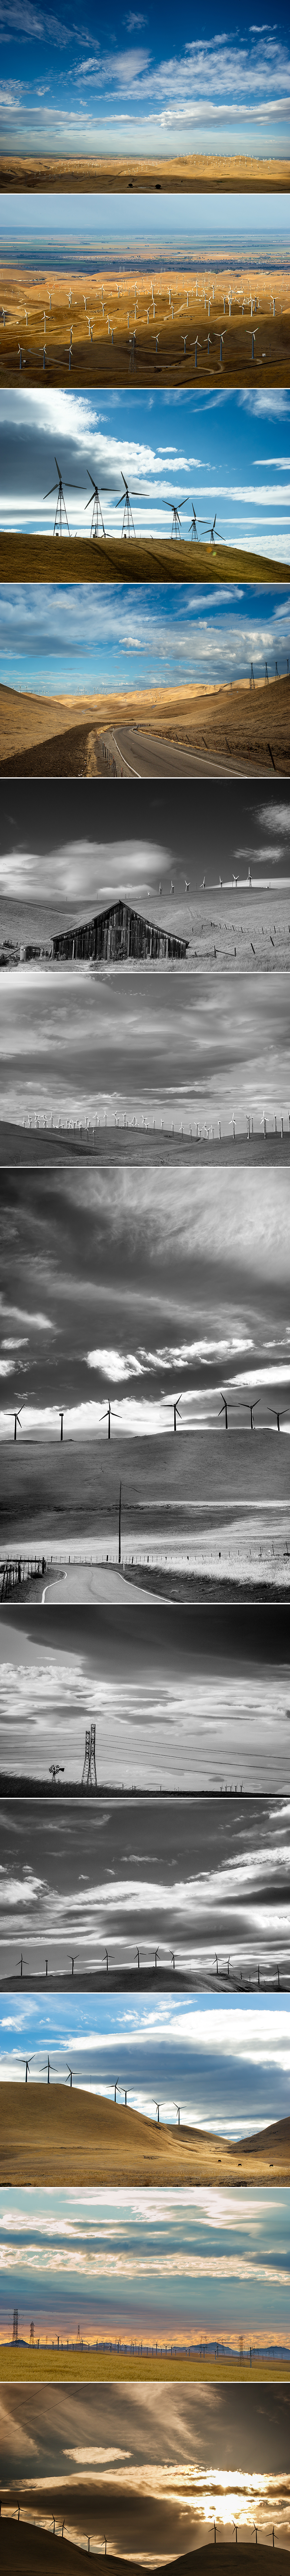 Altamont Pass Wind farm MP Singh Photography